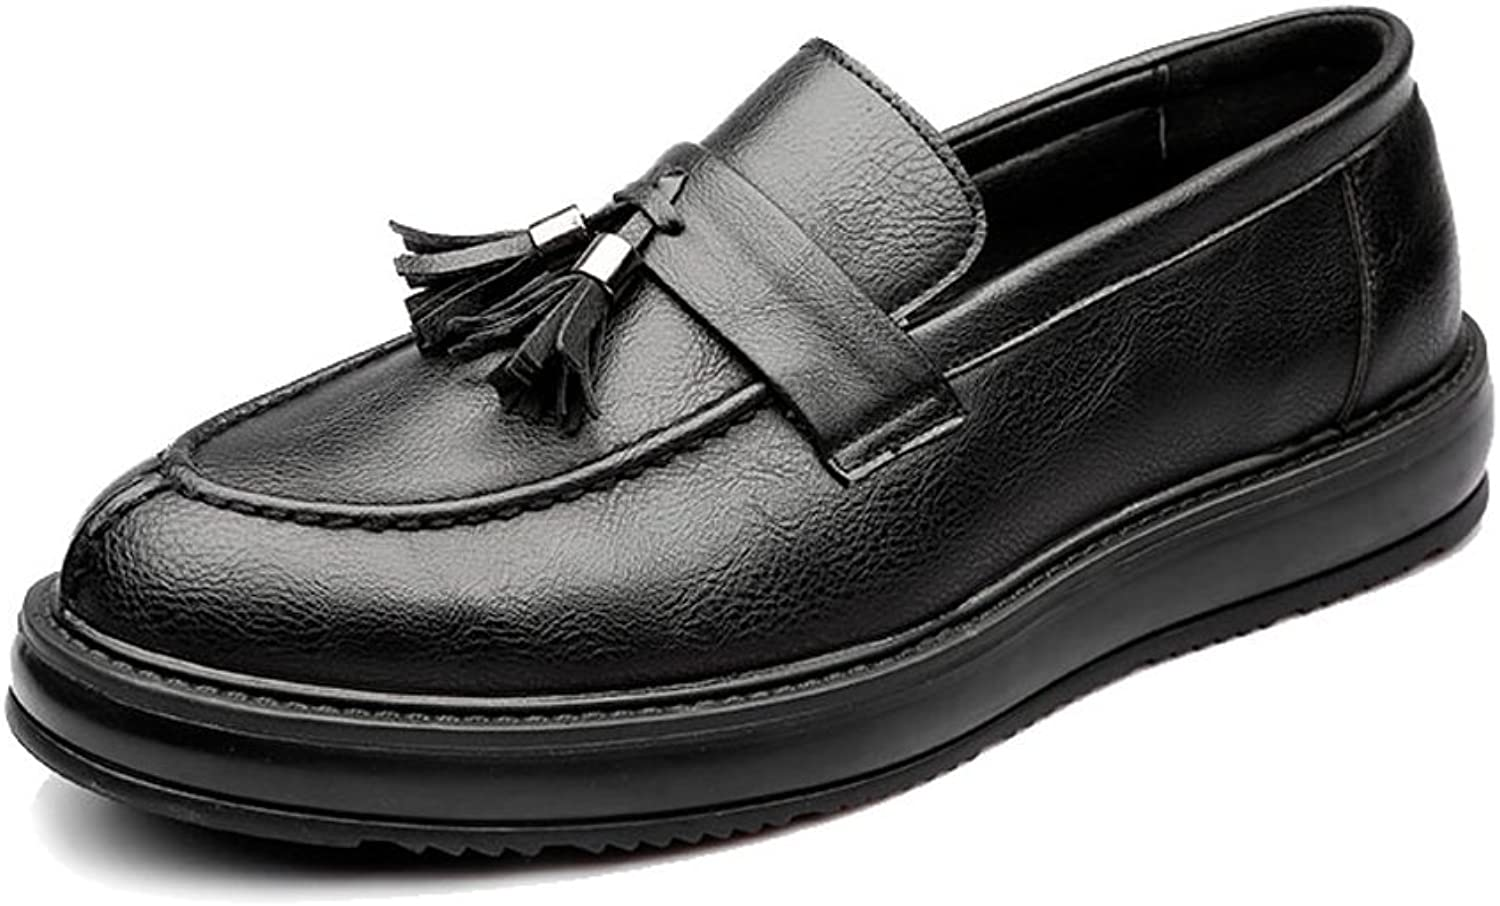 JIALUN-shoes Simple Men's Business PU Leather shoes Classic Slip-on Loafers Tassel Pendant Decoration Outsole Oxfords